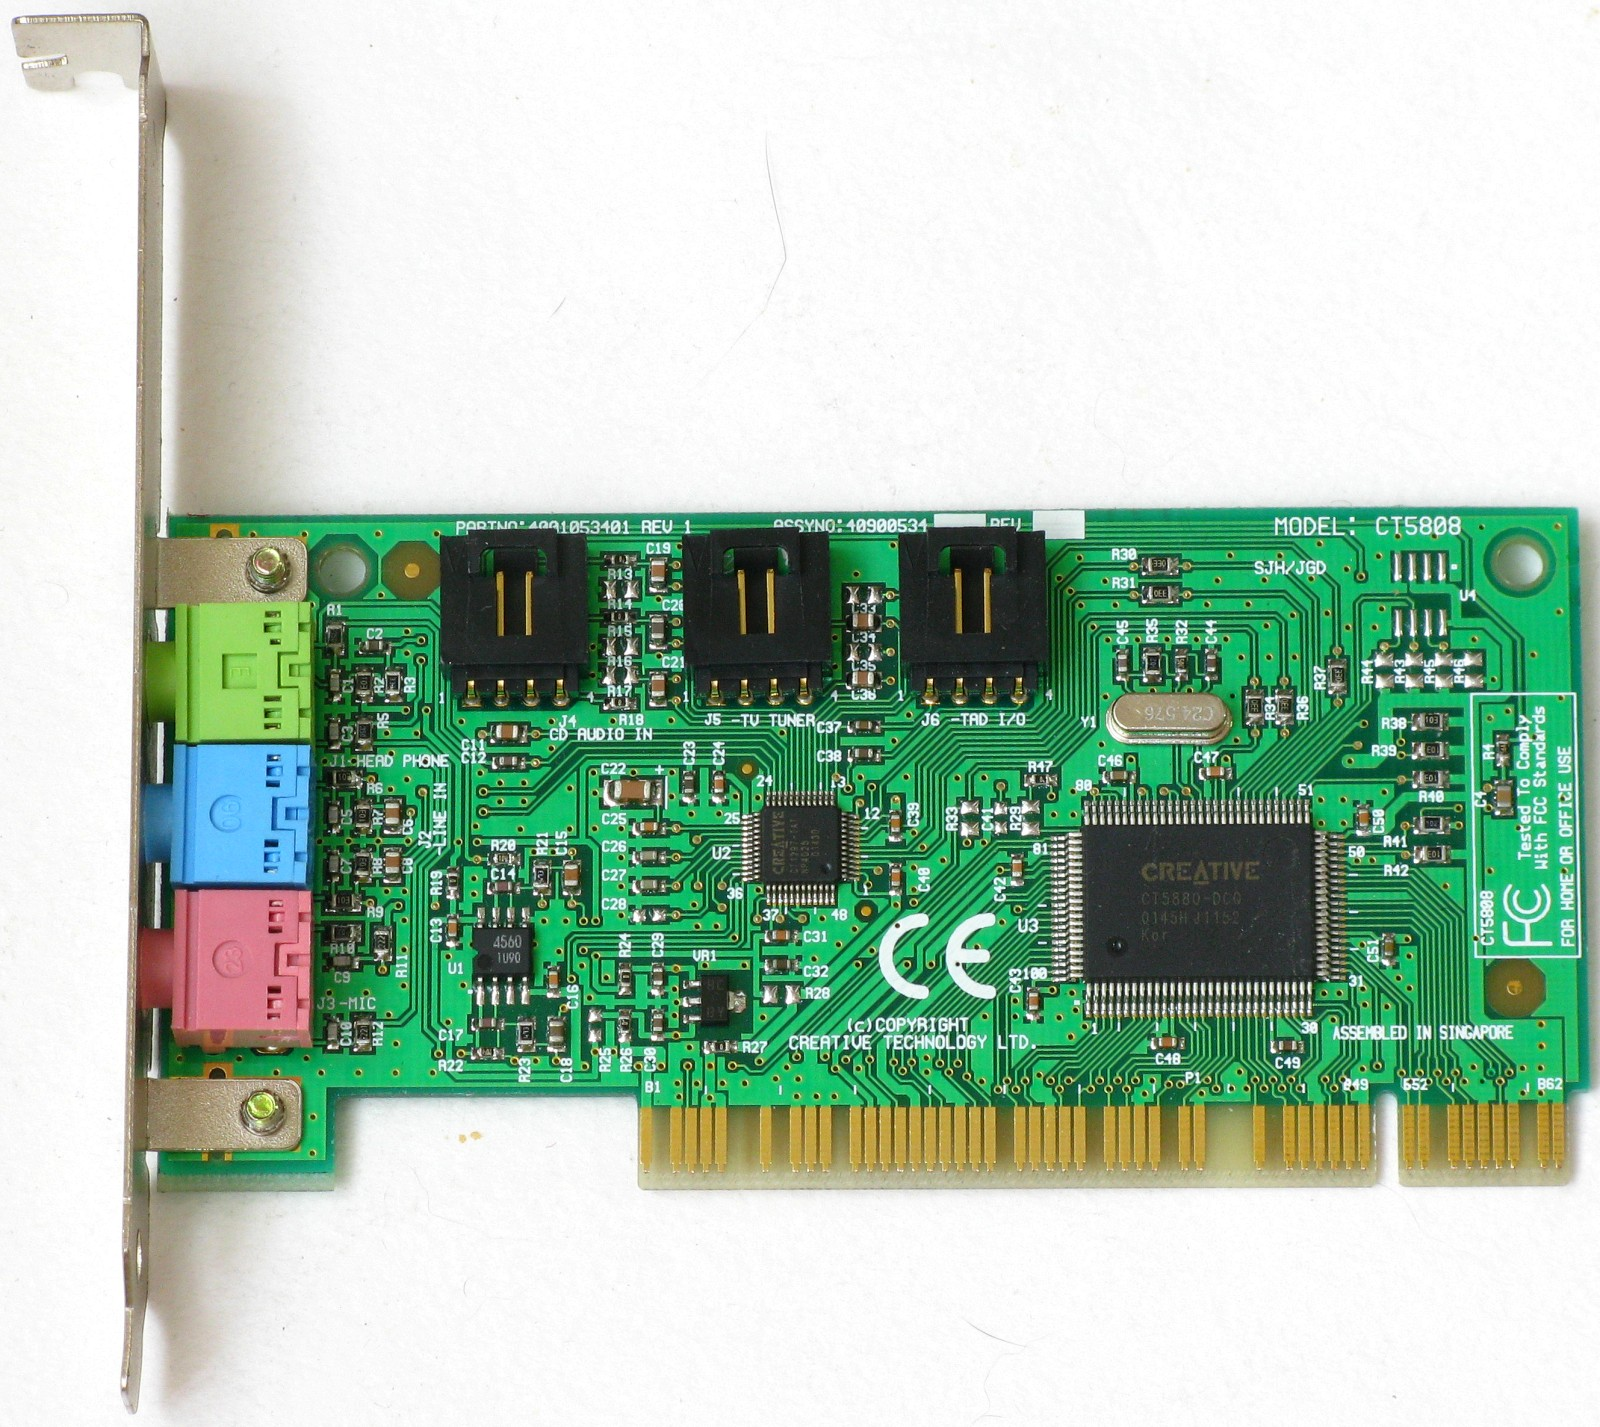 DRIVER FOR CREATIVE CT5808